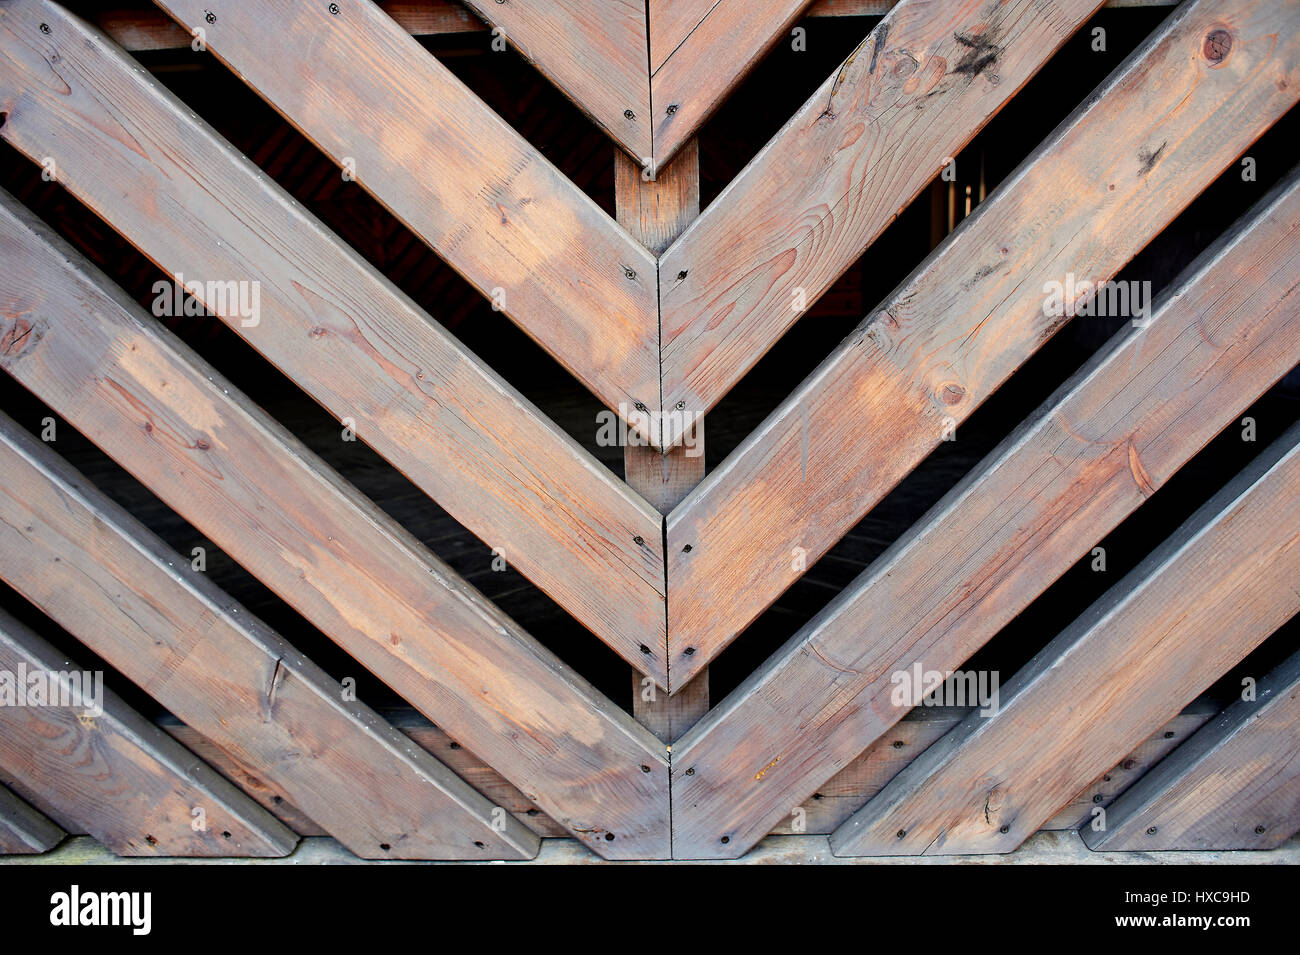 Oblique wooden slats. Bonded at an angle of 45 degrees. Fence, fencing - Stock Image